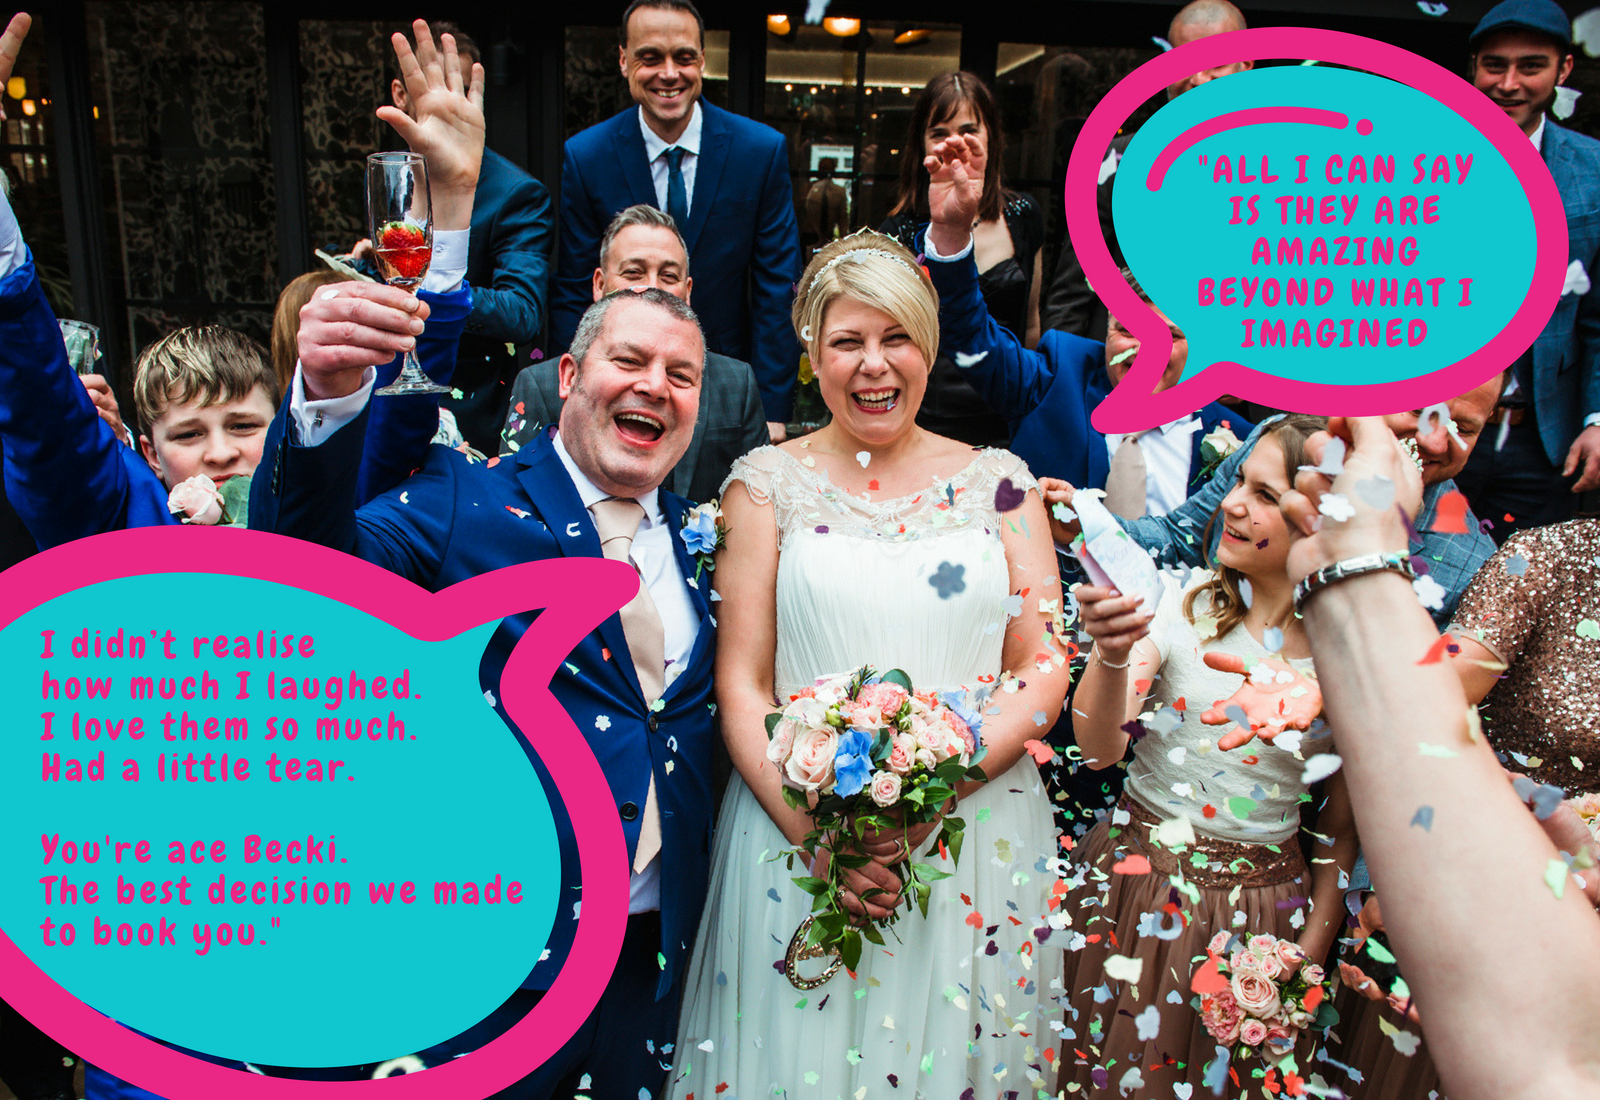 York wedding photographer taking fun photos at your wedding. With confetti and glitter at the ready.